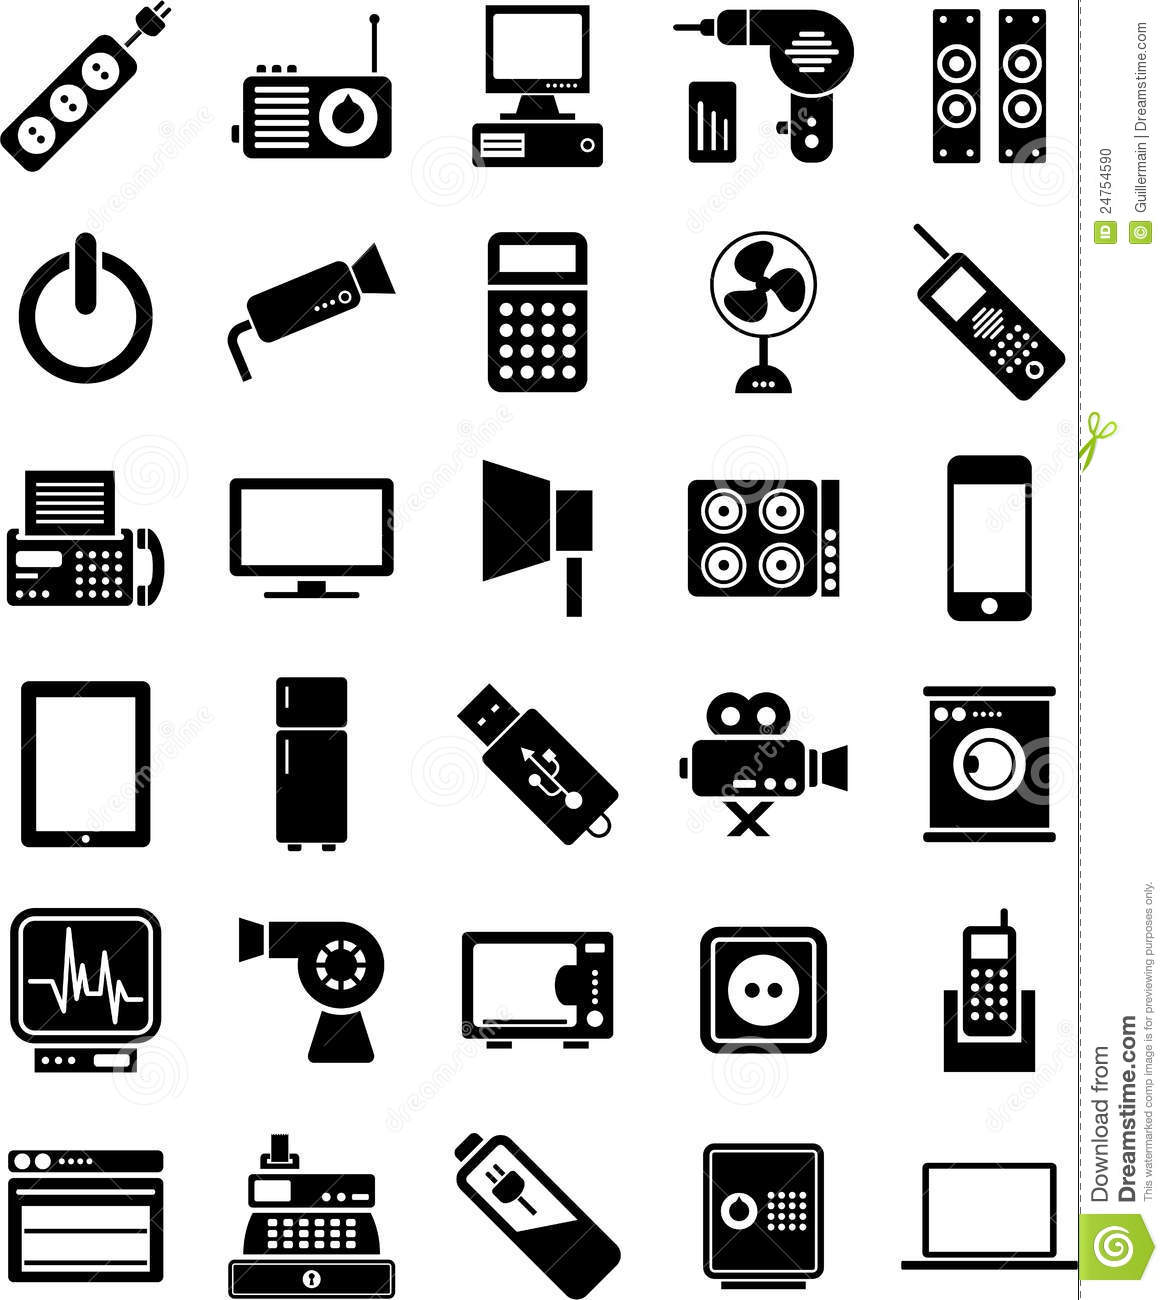 Electronic Devices Icons Stock Photo - Image: 24754590